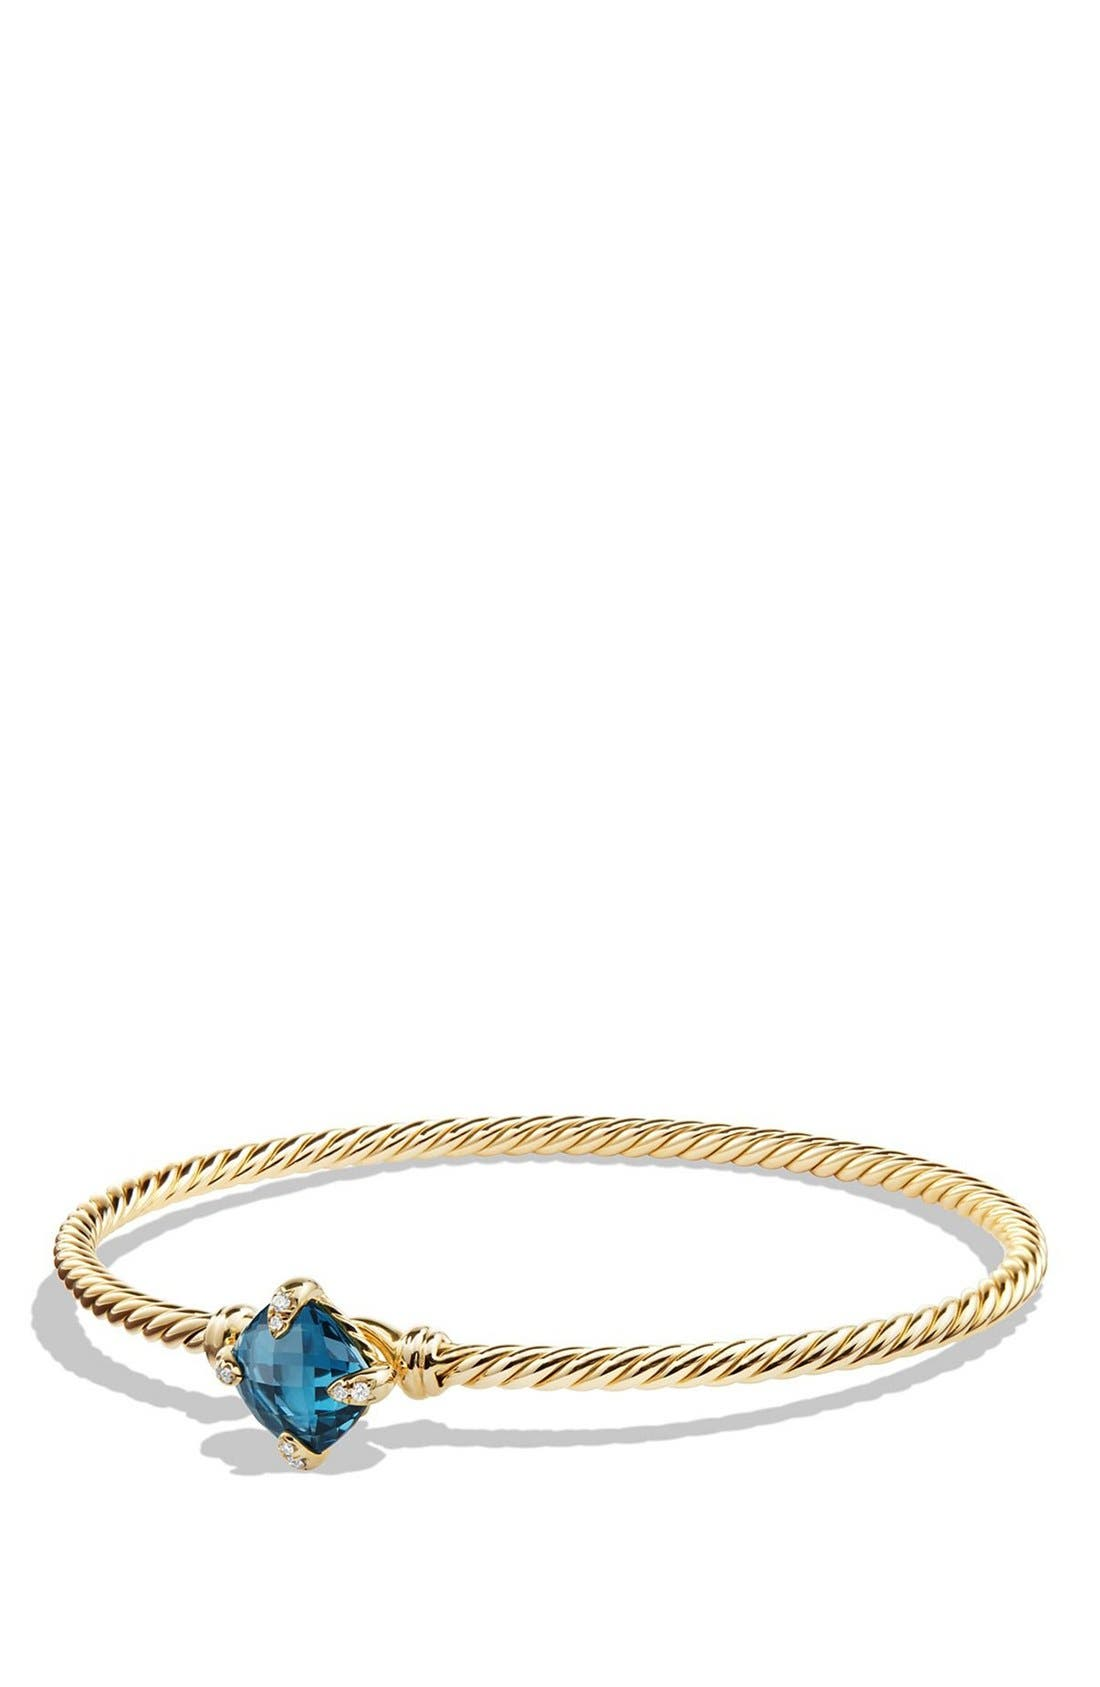 Alternate Image 1 Selected - David Yurman 'Châtelaine' Bracelet in 18K Gold with Diamonds